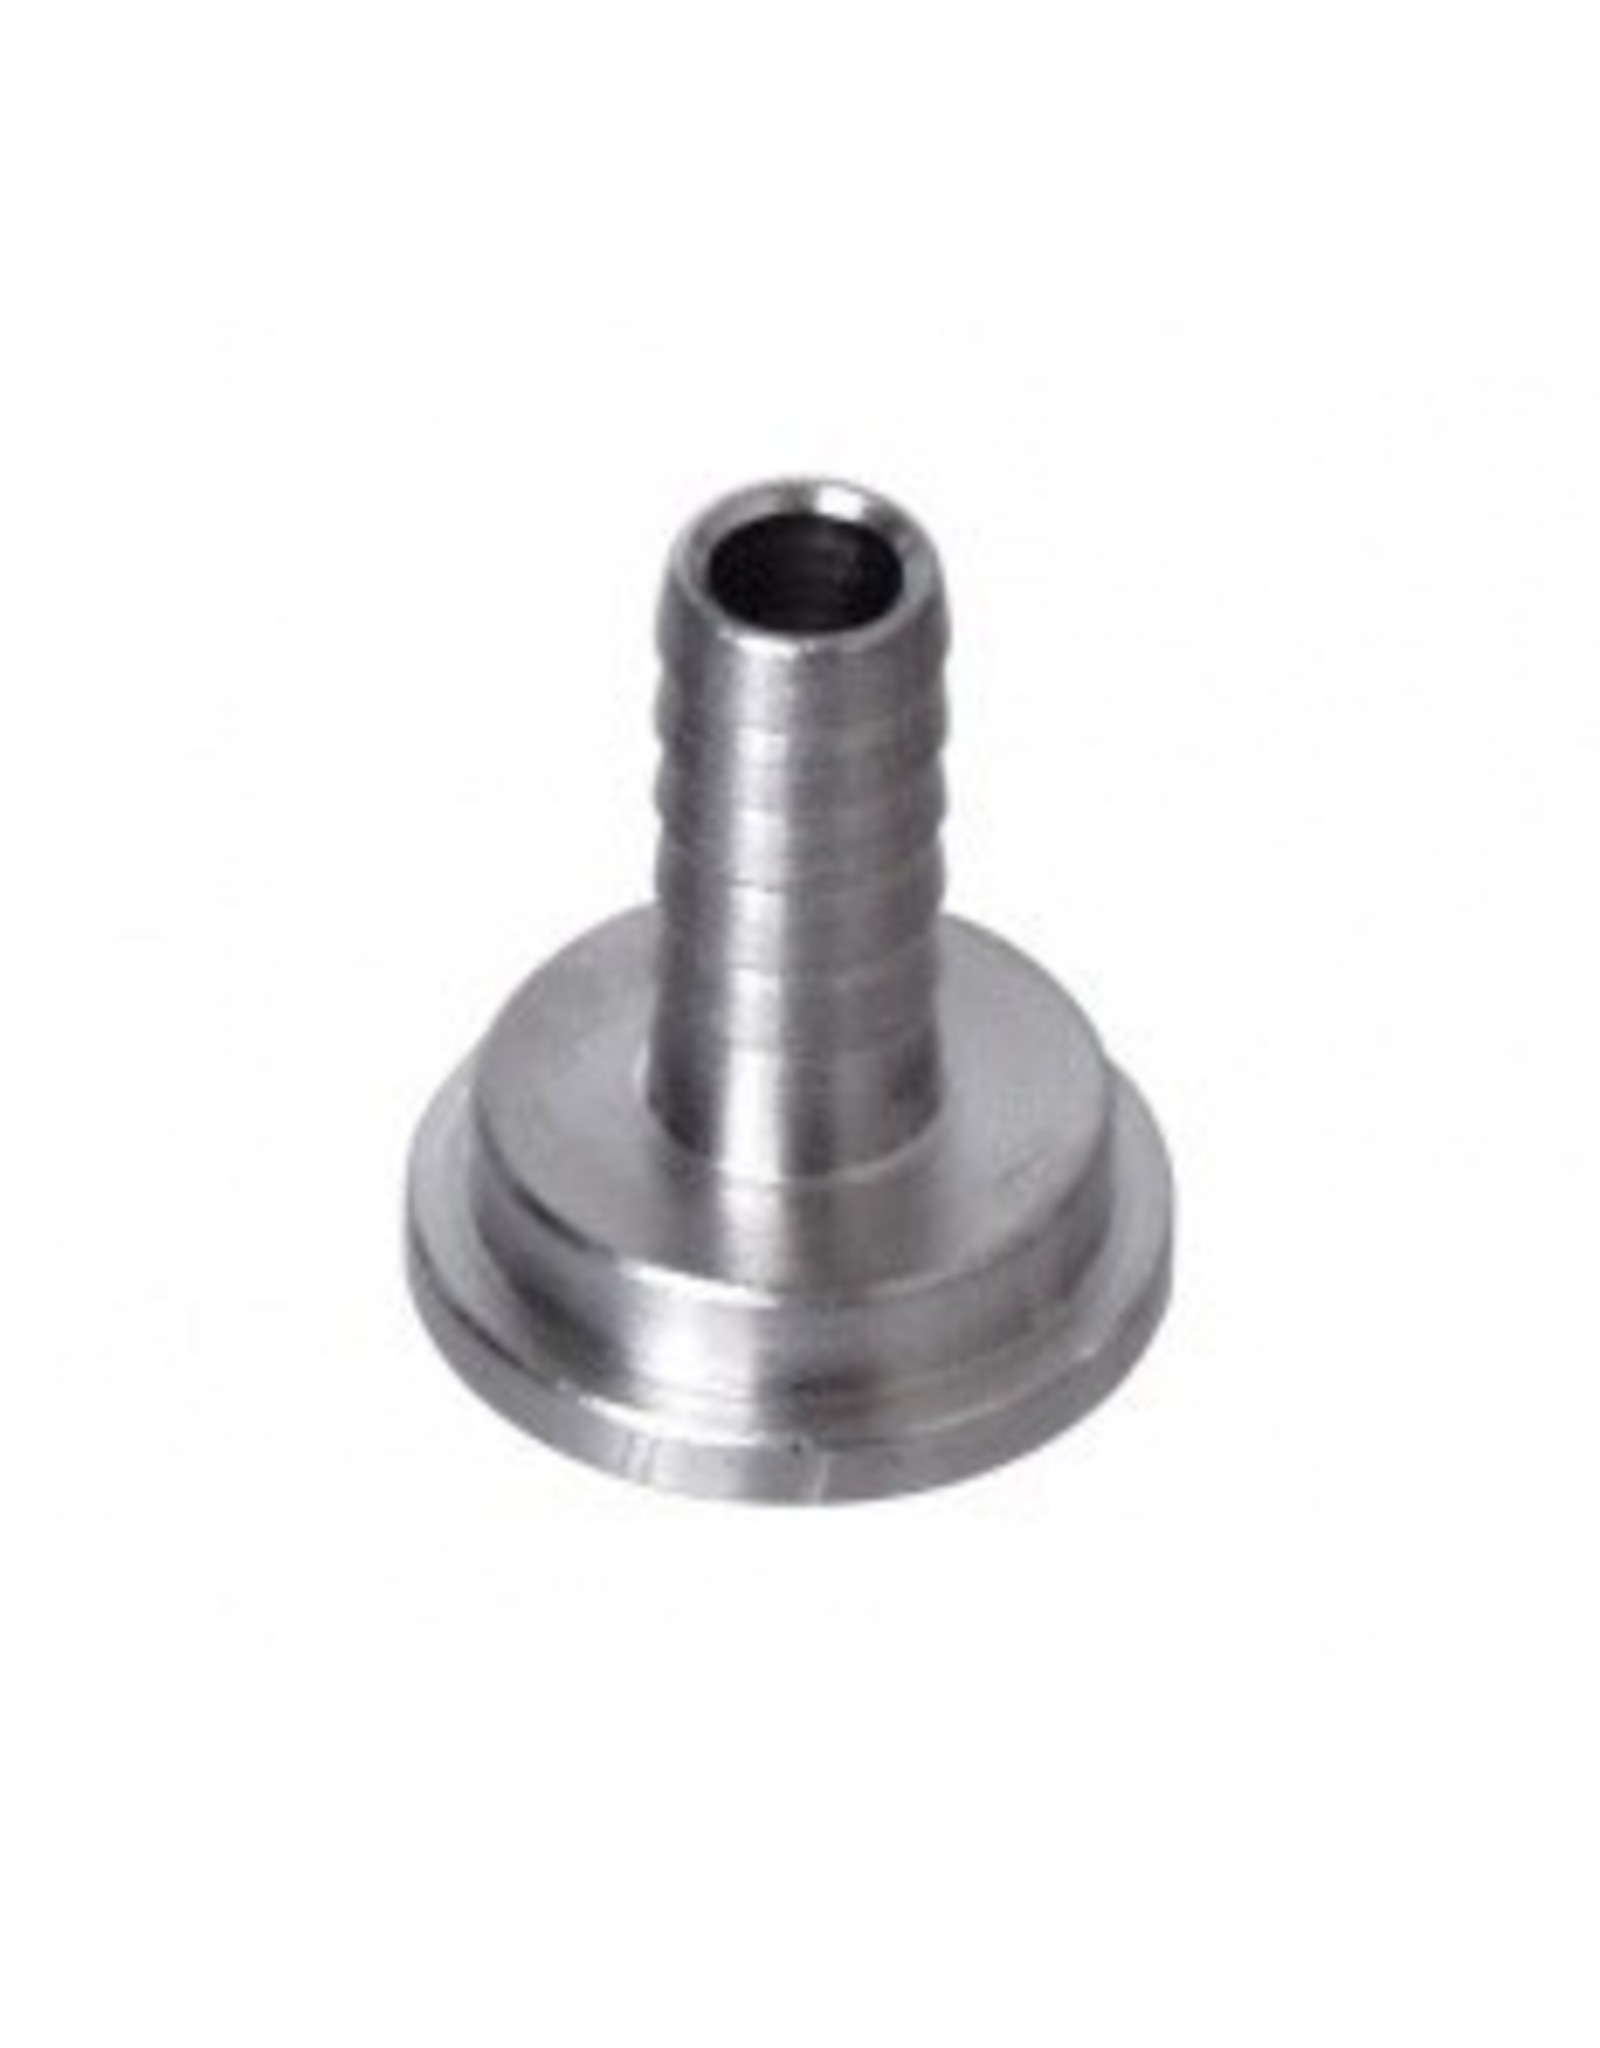 Foxx Equipment Stainless 1/4 Tailpiece (RIGHT ONE!!!)